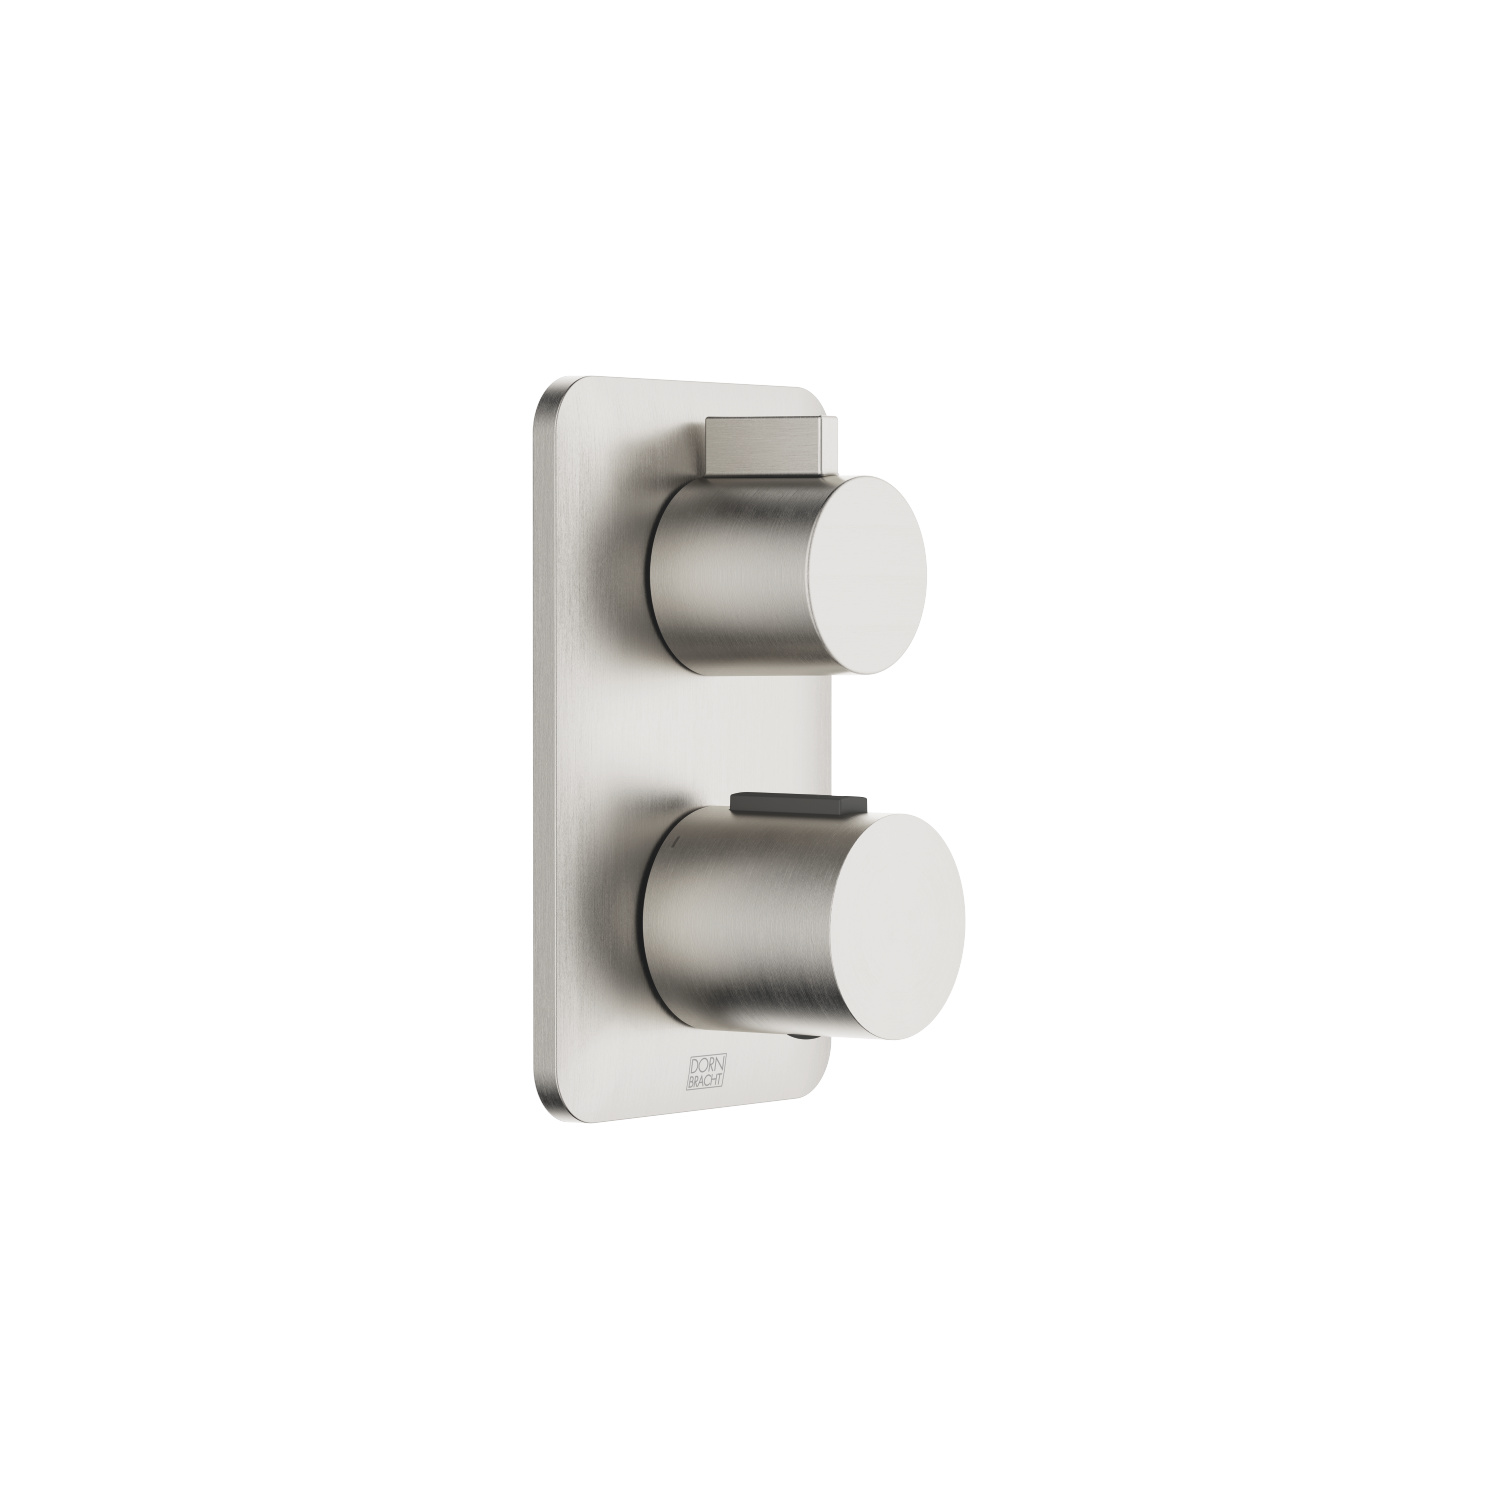 Concealed thermostat with one function volume control - platinum matt